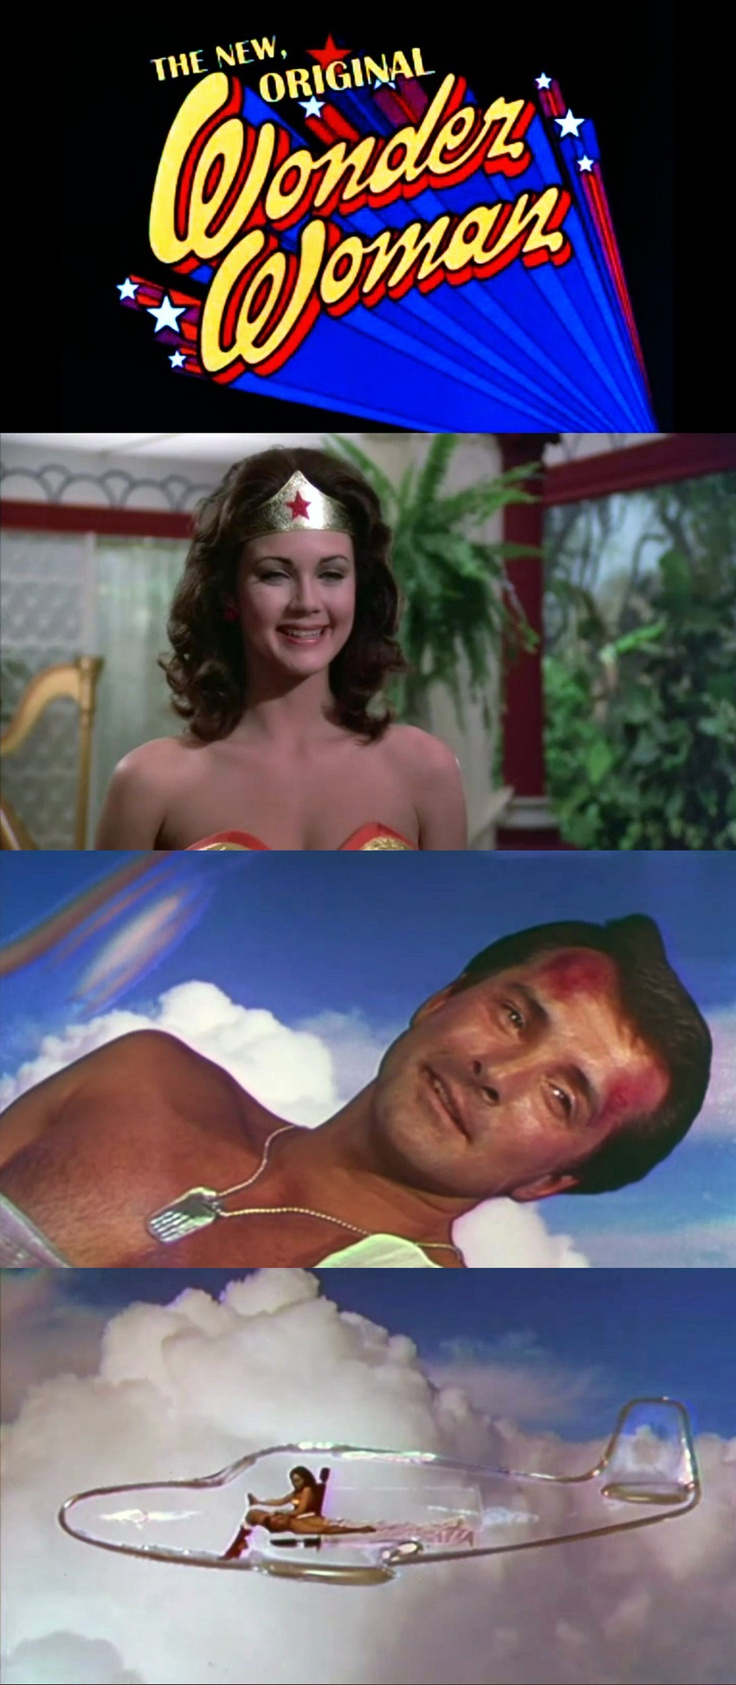 The New, Original Wonder Woman (November 1975 Made-for-TV movie, ABC) starring Lynda Carter & Lyle Waggoner. Its successs led to the TV series.